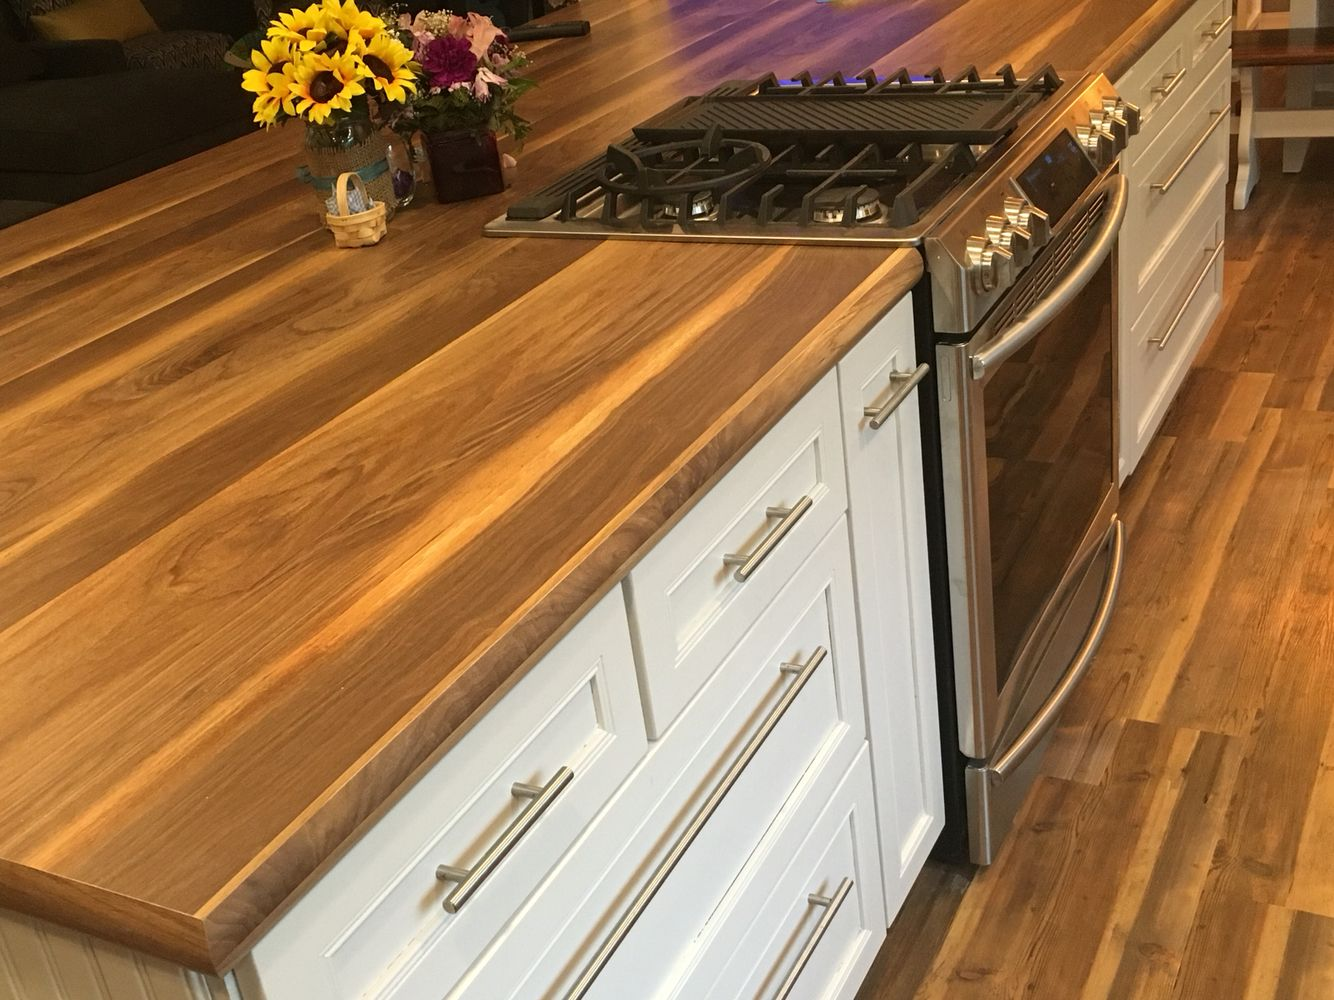 My Dream Kitchen Formica Wide Plan Walnut Countertop Karndean